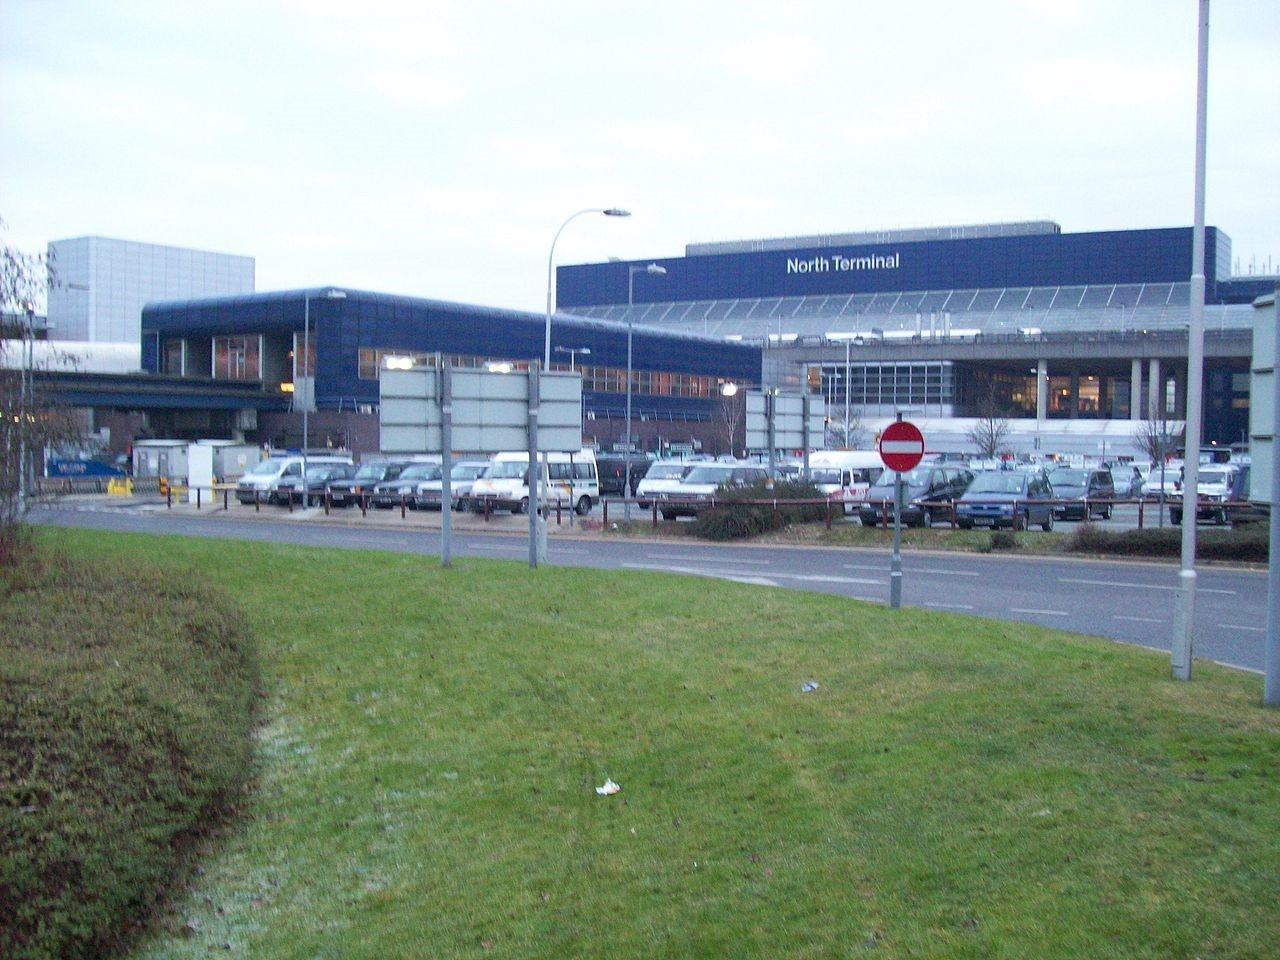 Severe shortage of gatwick airport parking spaces leads to rise in severe shortage of gatwick airport parking spaces leads to rise in car dumping by rogue firms parking at airports kristyandbryce Images